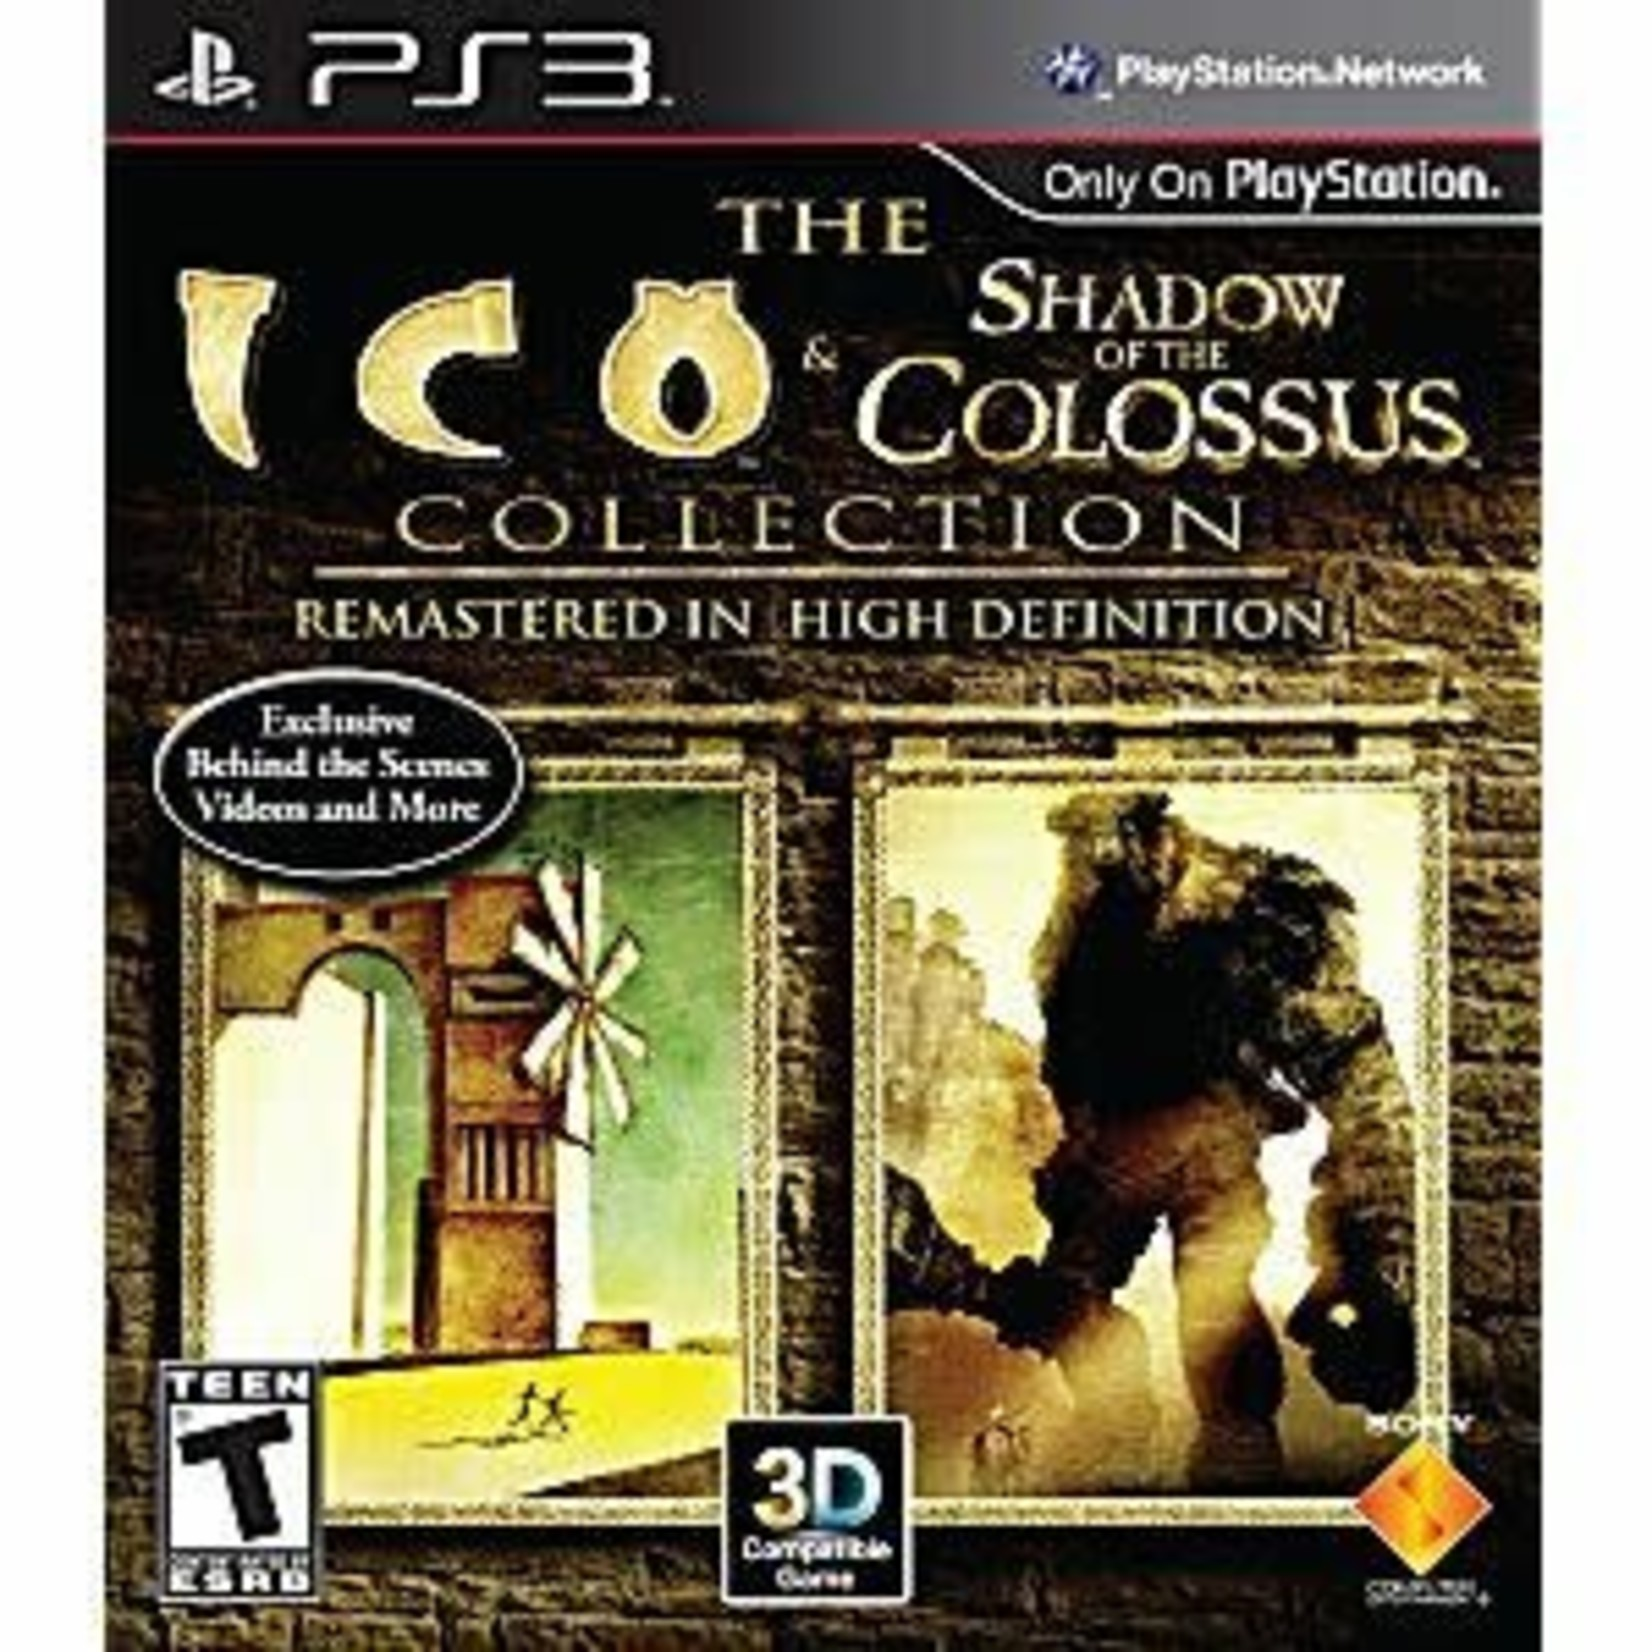 PS3-Ico and Shadow of the Colossus Collection